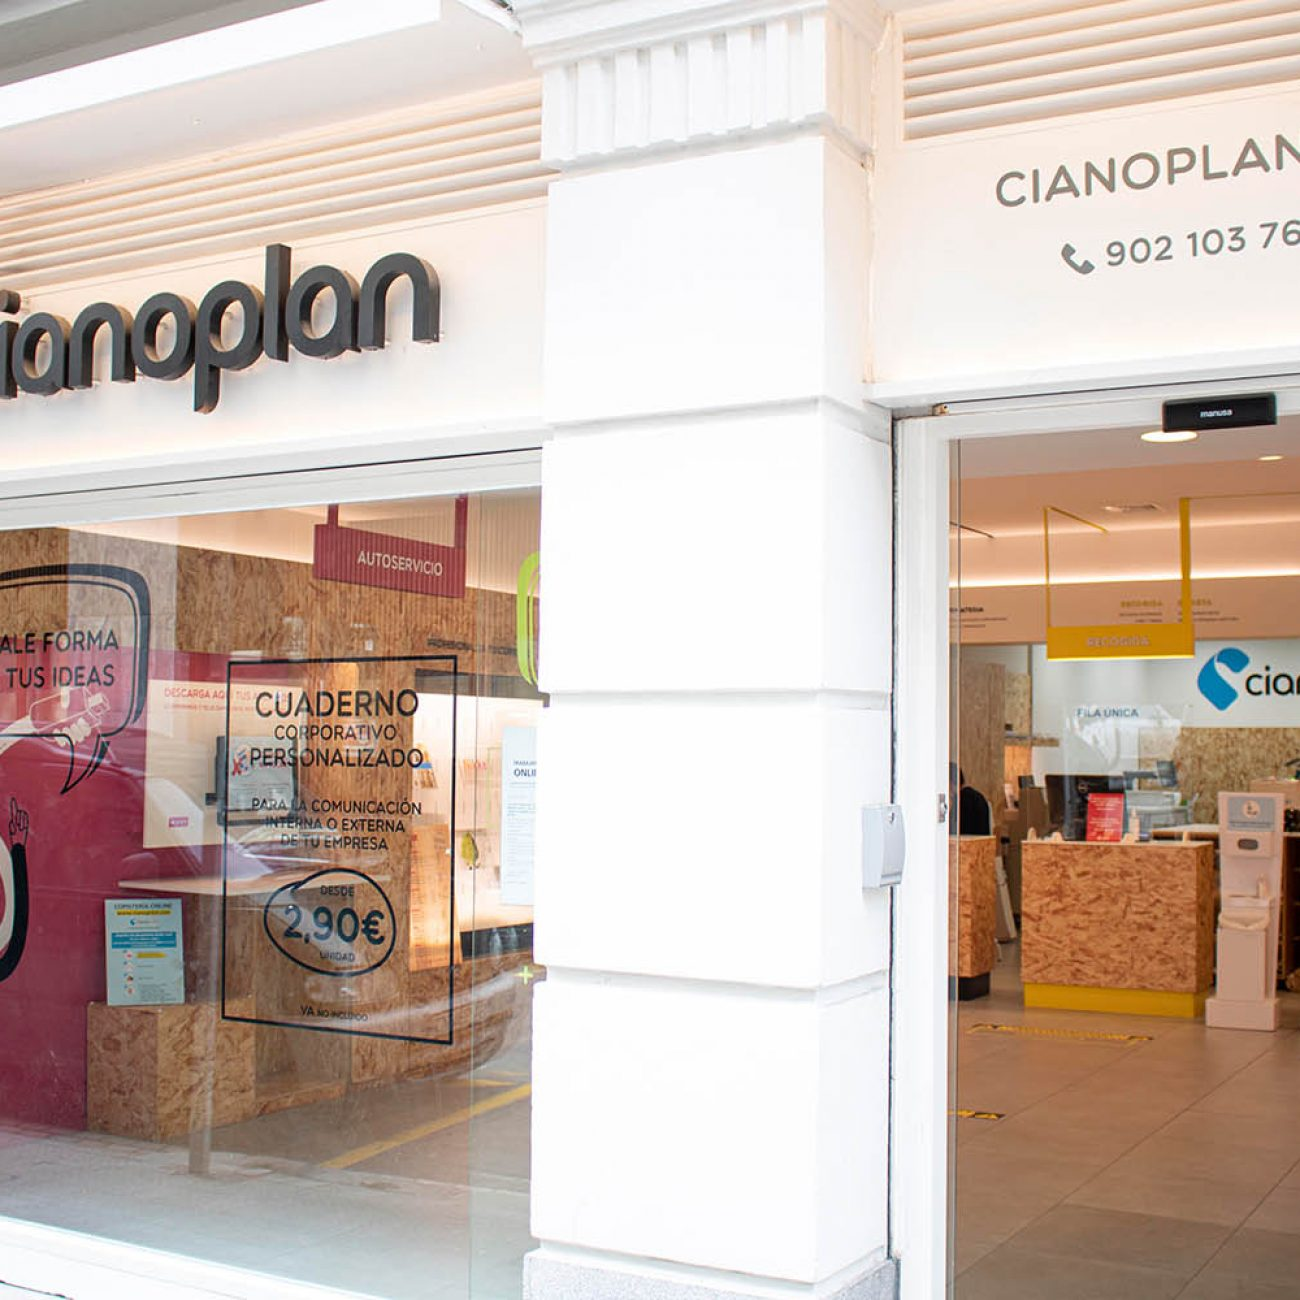 CIANOPLAN